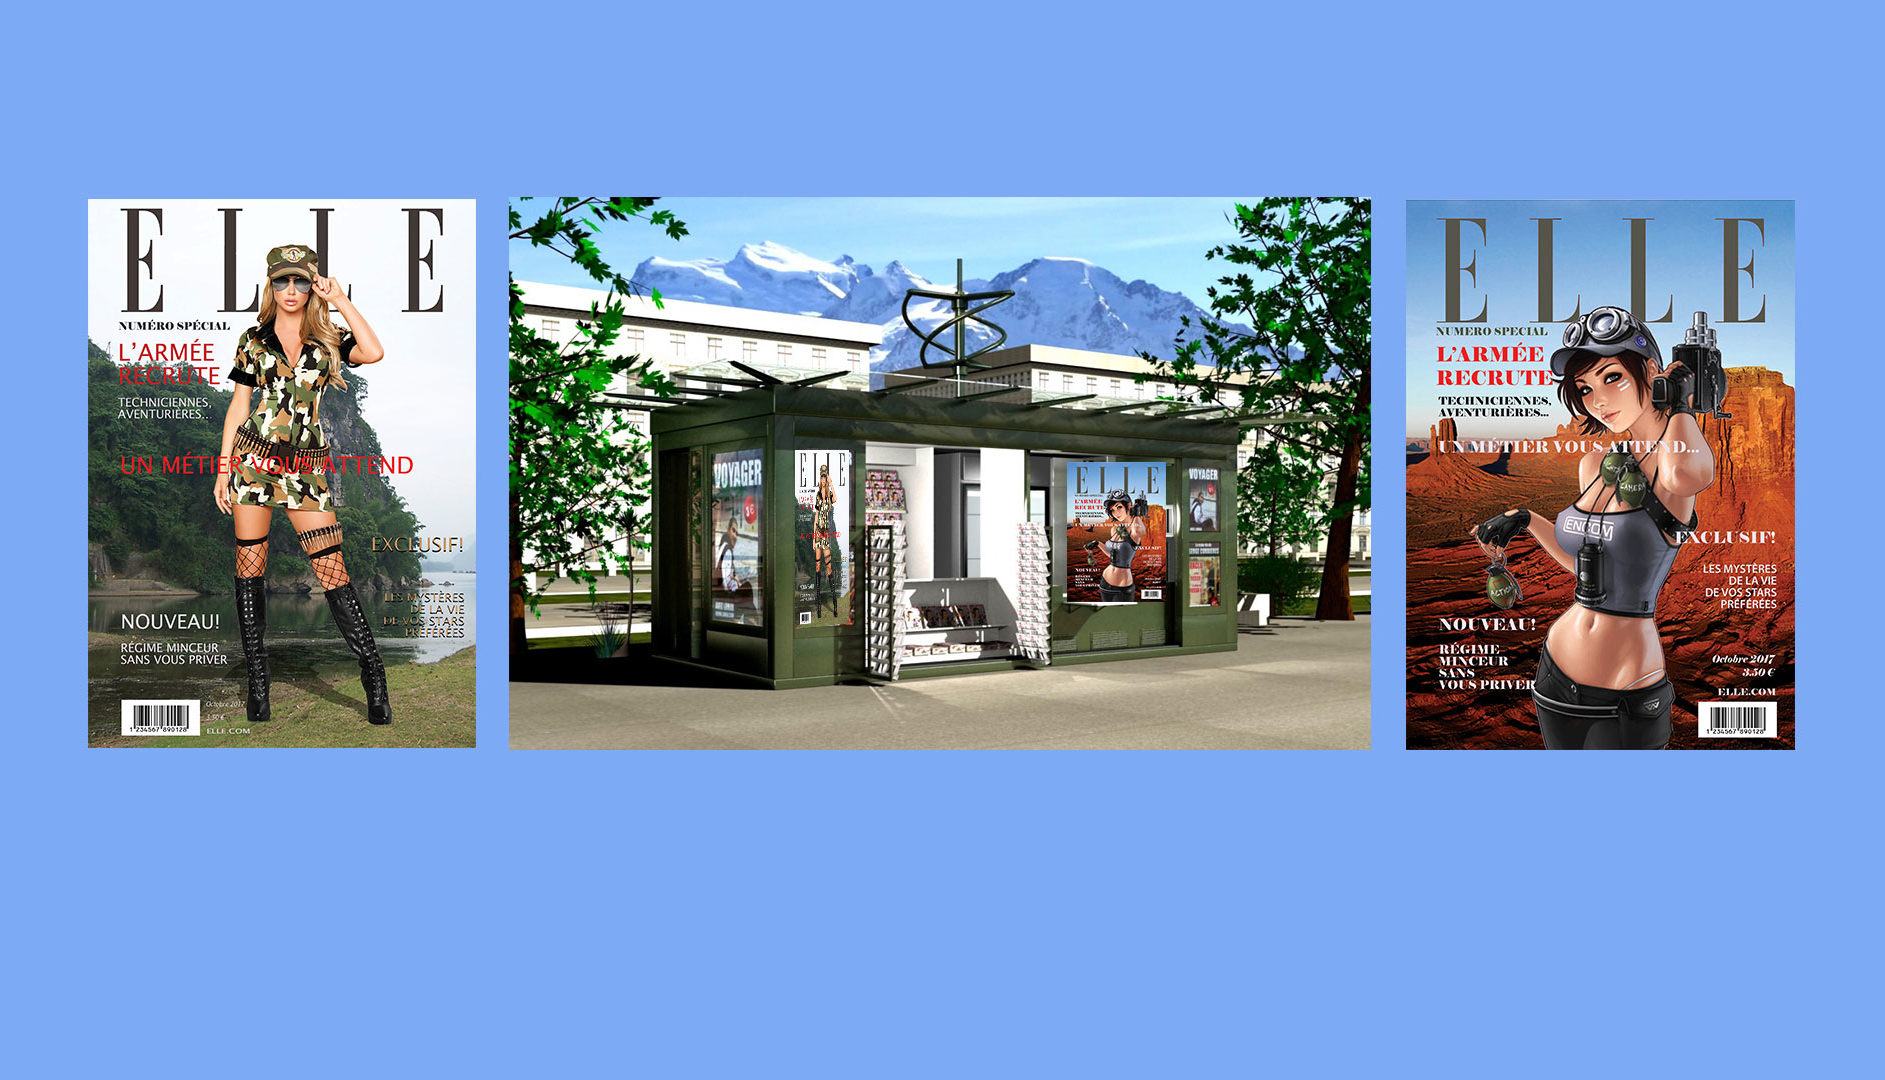 Couverture de Magazine - Mise en page sur Photoshop